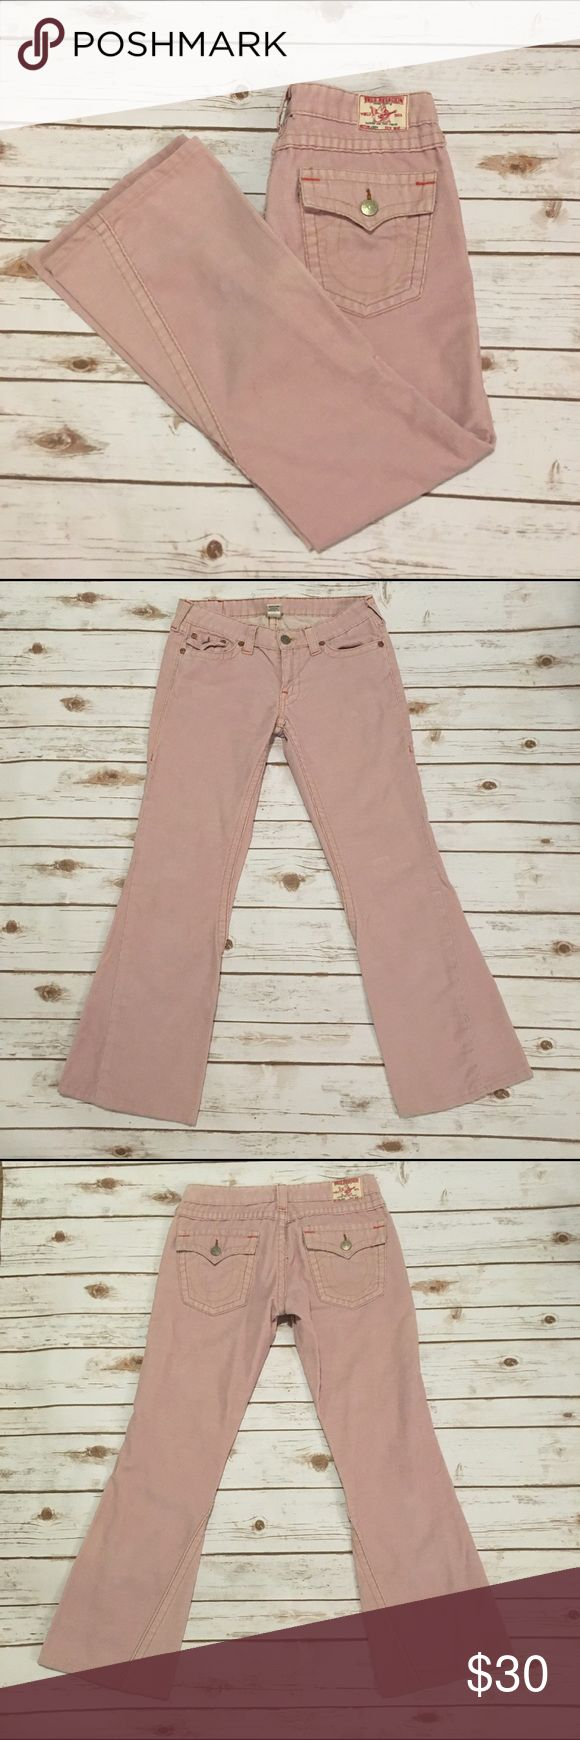 "True Religion pink Joey cords True Religion Pink Joey cords 🌟Size- Women's 30 🌟Flat Measurements- 15"" waist 8"" rise 29"" inseam 🌟Material- 65% cotton 35% polyester  🌟Condition- Excellent! No flaws noted True Religion Jeans"